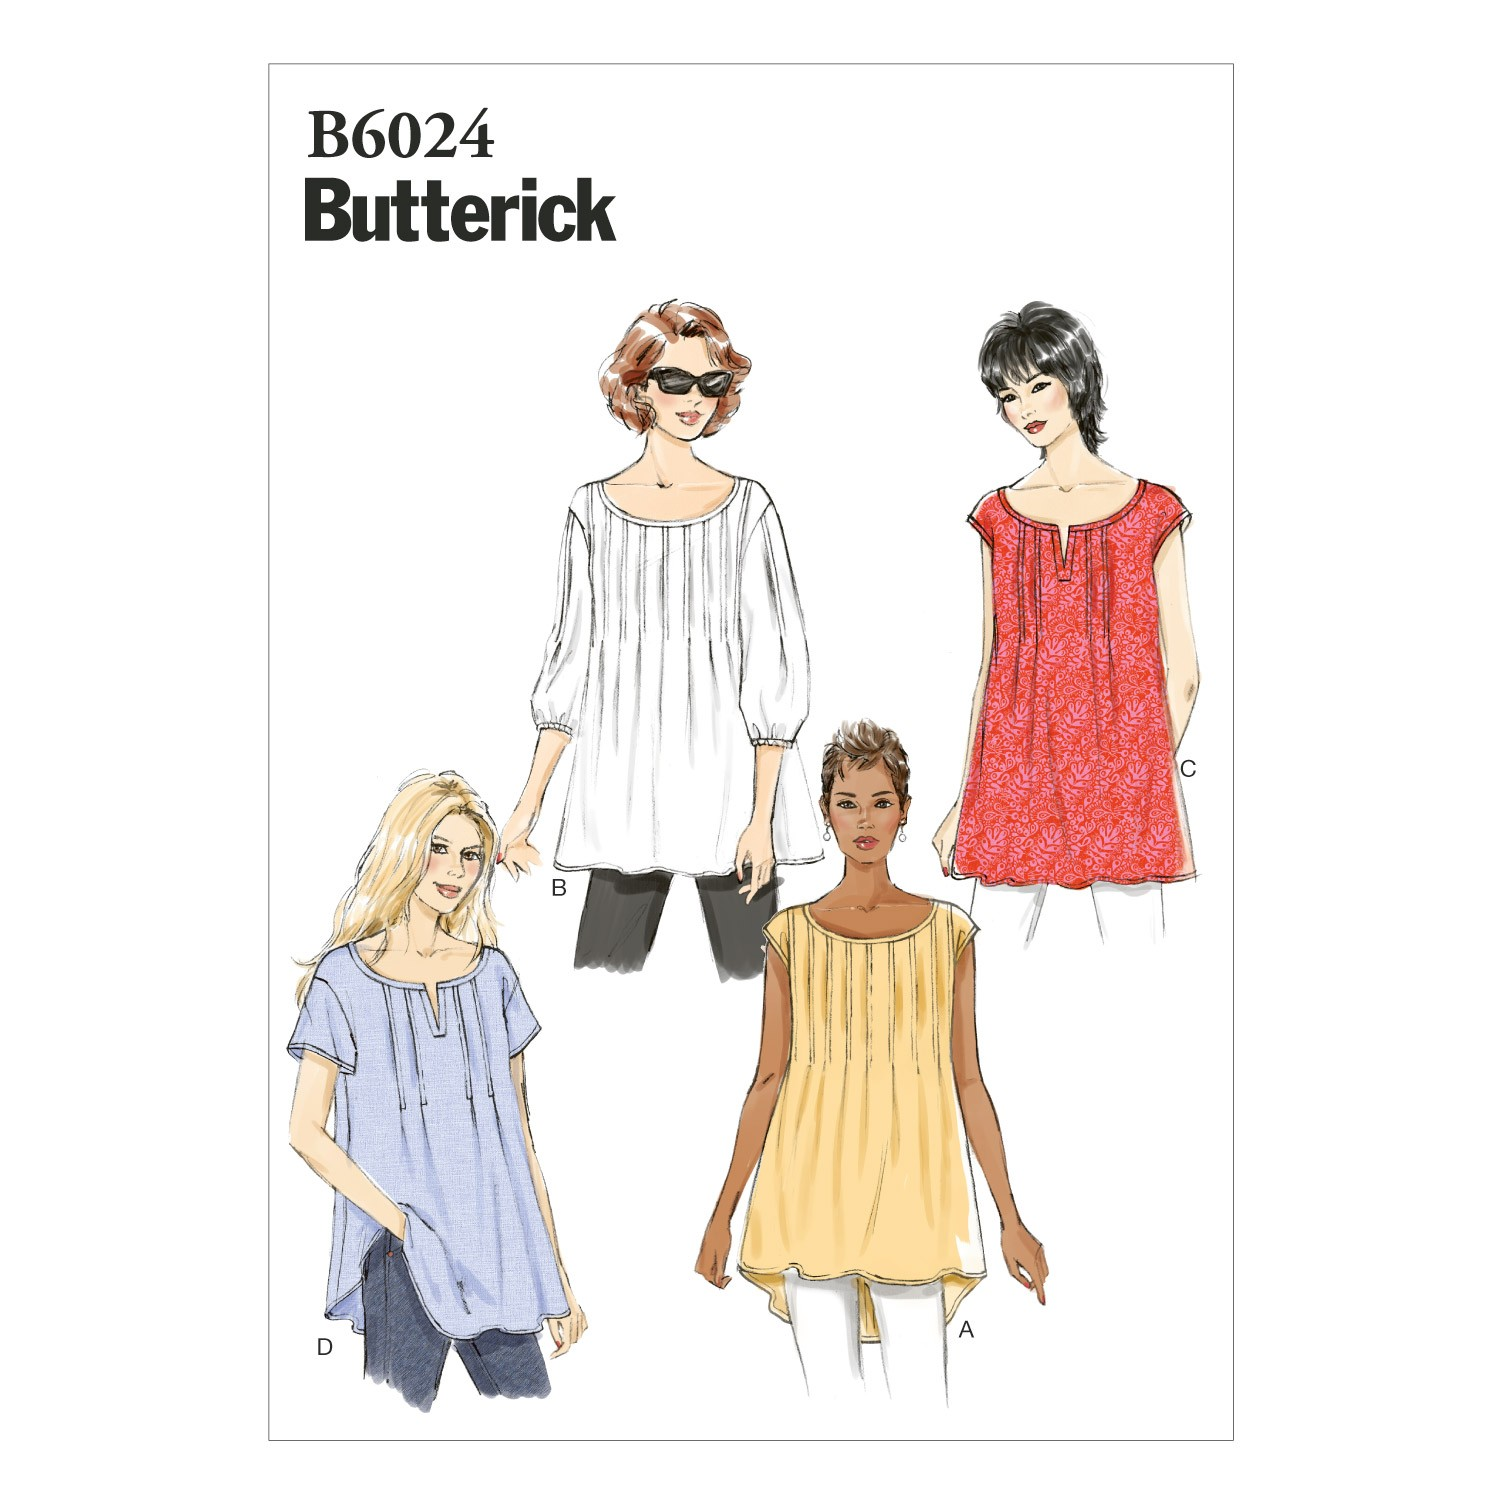 Butterick Sewing Pattern 6024 Misses' Loose Fitting Top